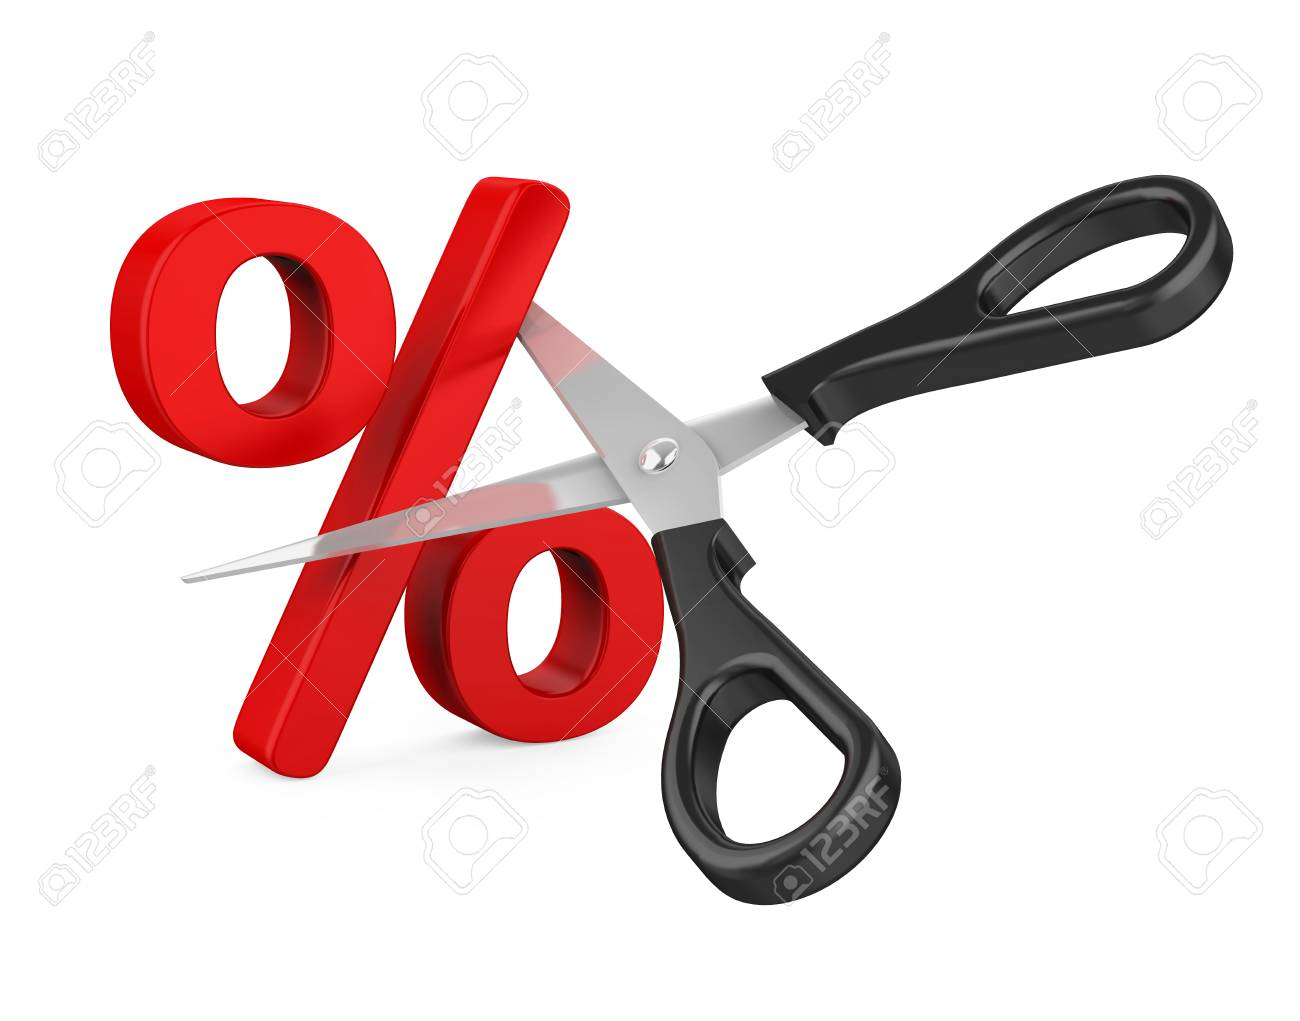 Percent Sign Cut and Scissors Isolated - 105471750